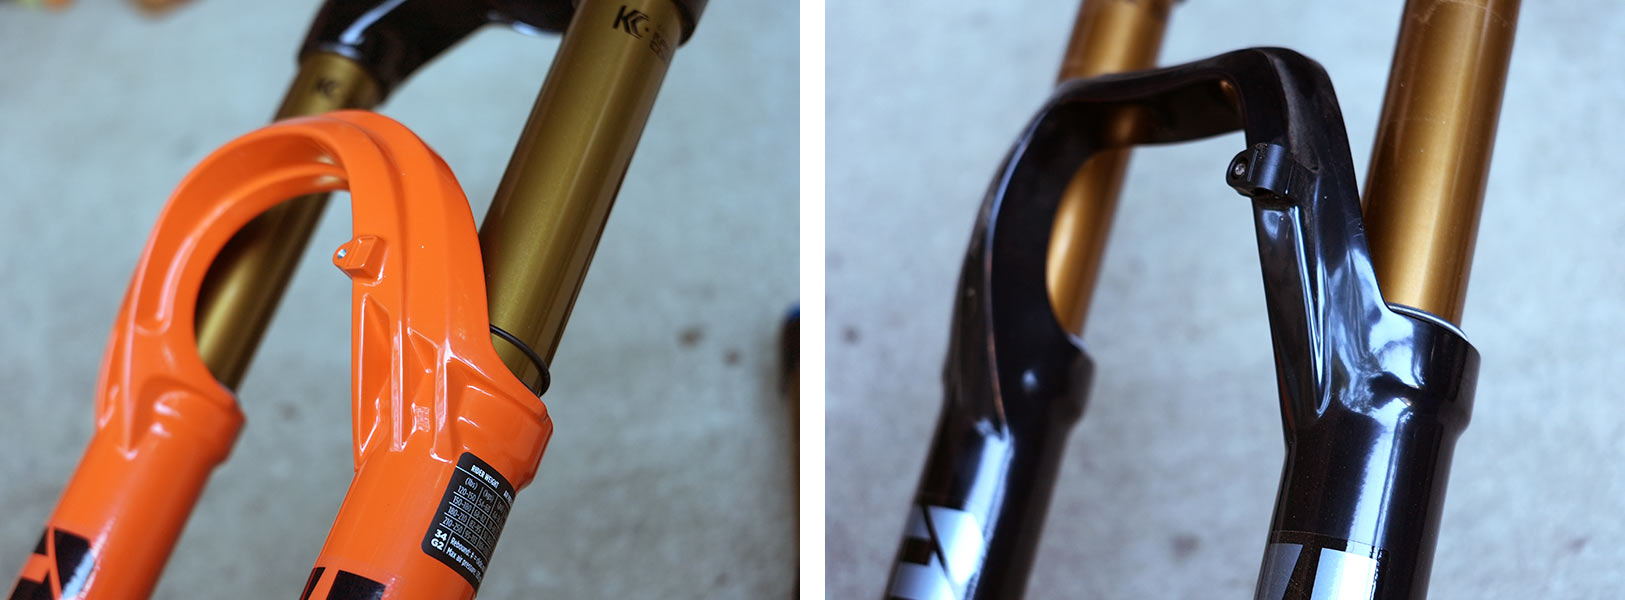 detail photo showing feature comparison between new and old fox 34 mountain bike forks